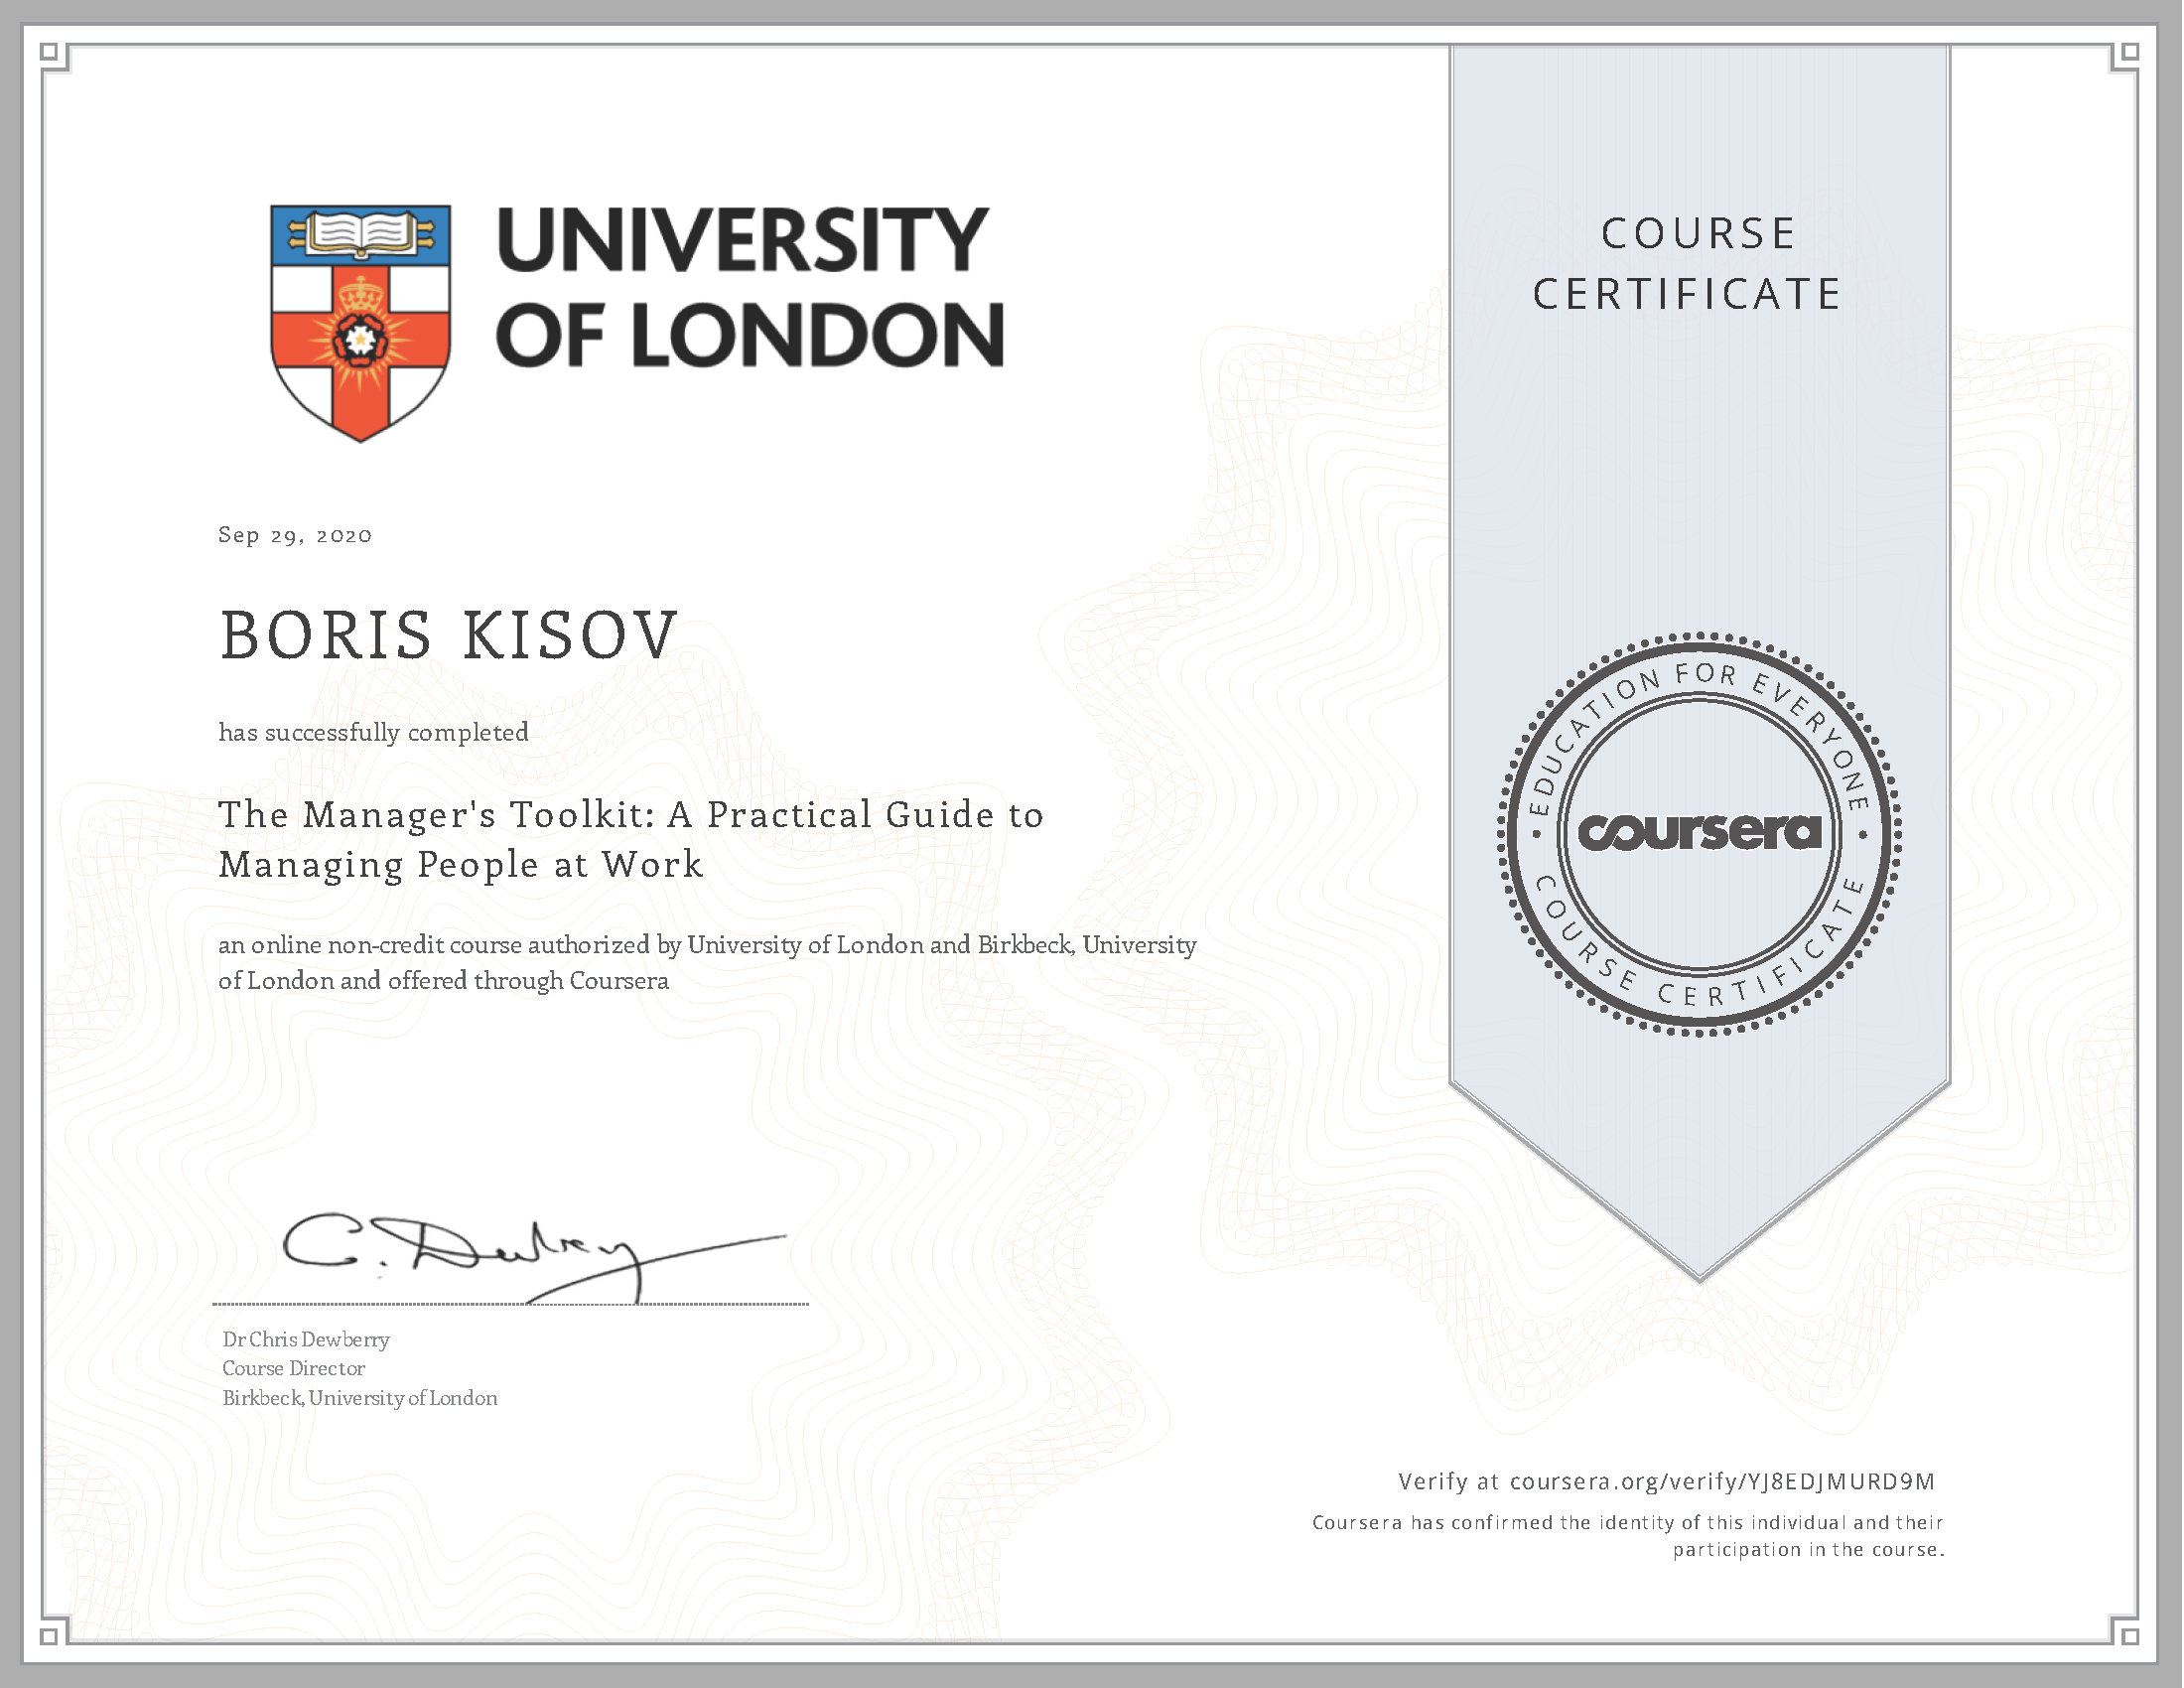 University of London - The Manager's Toolkit